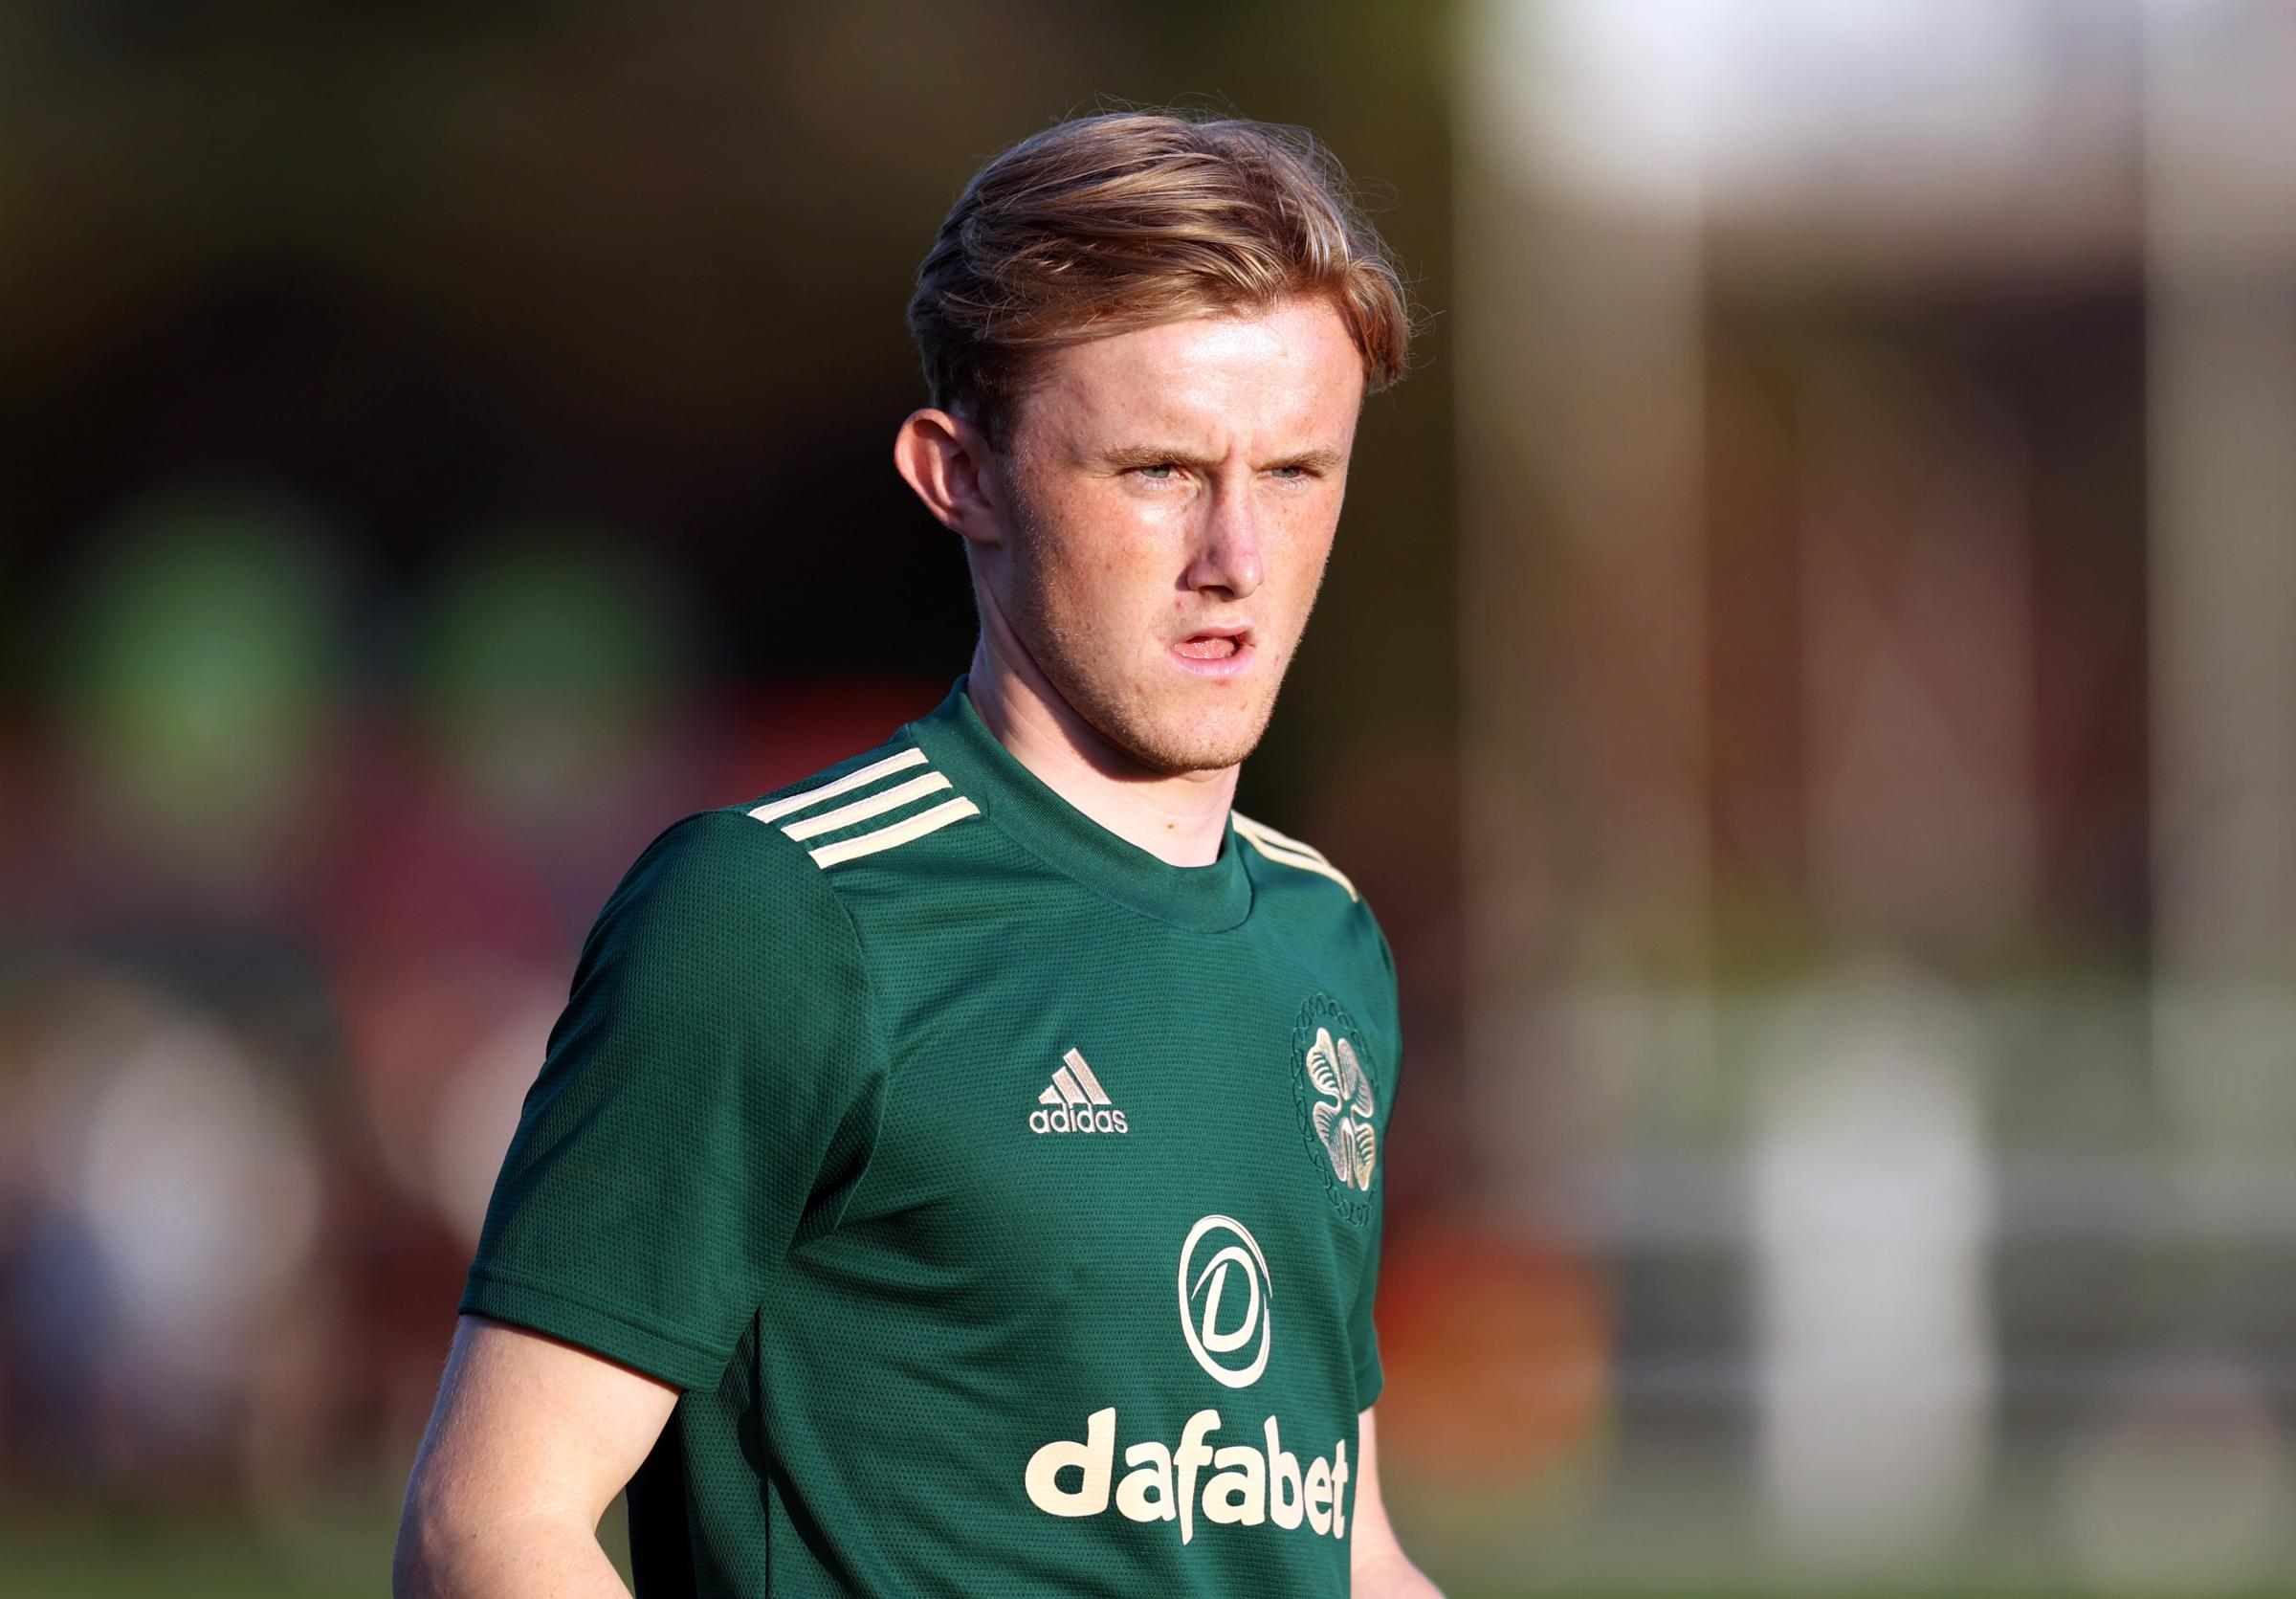 Ewan Henderson on brother Liam giving him tips through Celtic TV, and making his mark as he moves into final year of contract